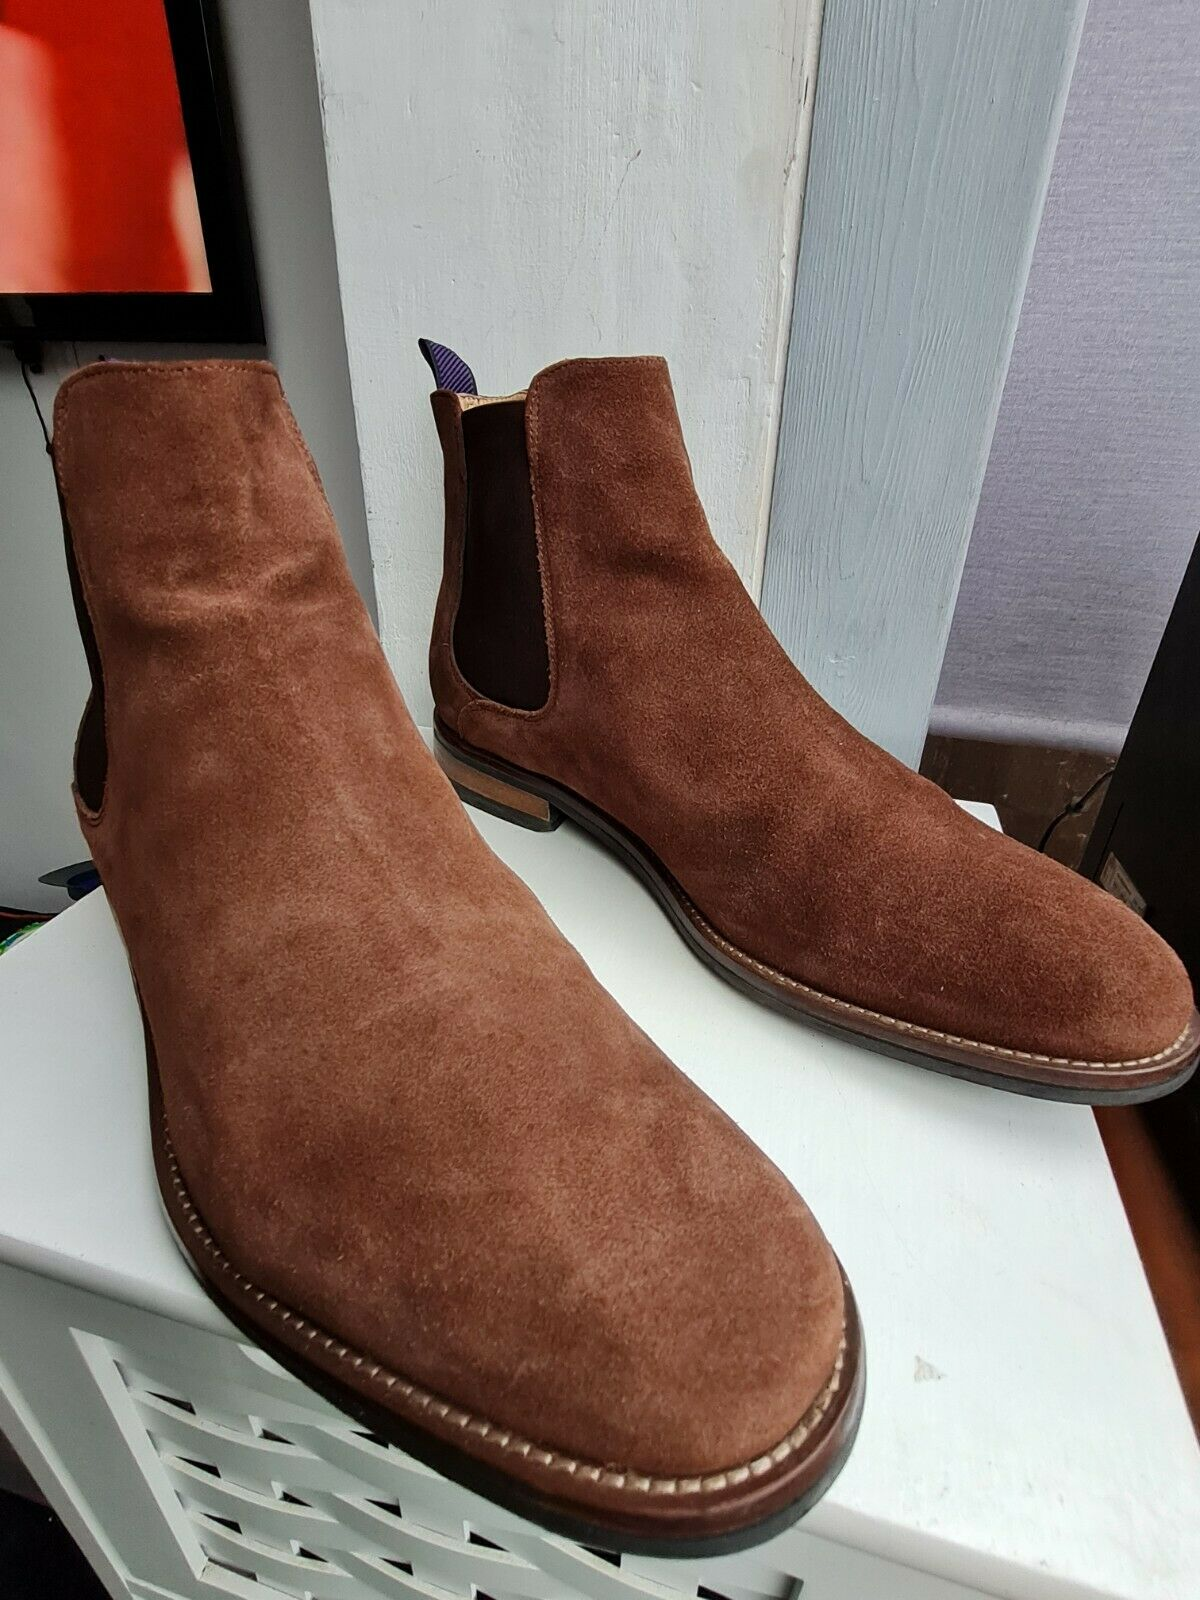 MARKS & SPENCER BROWN REAL SUEDE LEATHER CHELSEA BOOTS == UK 12 ==